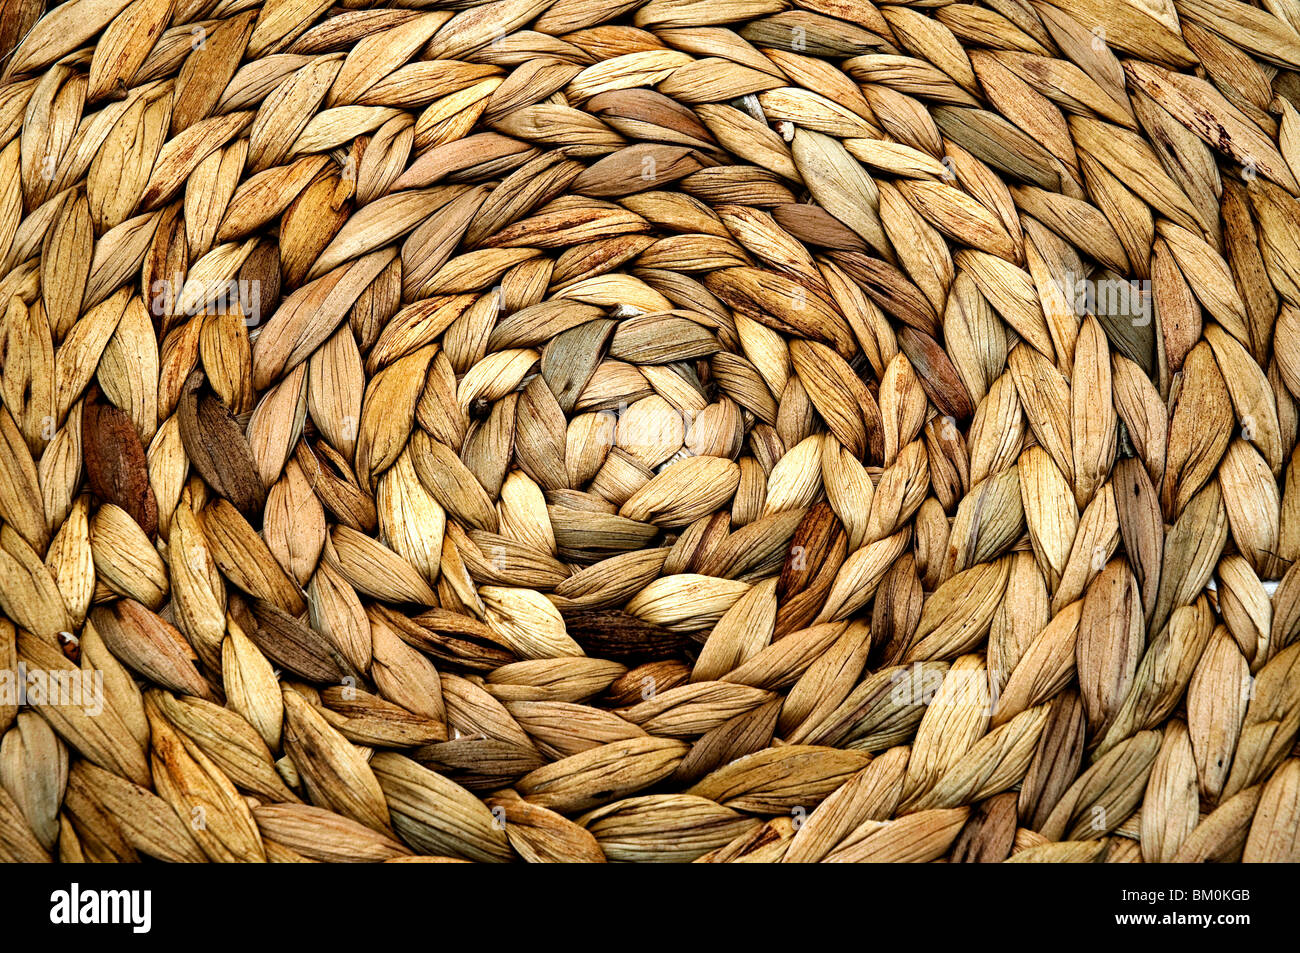 Detail of a wicker basket - Stock Image